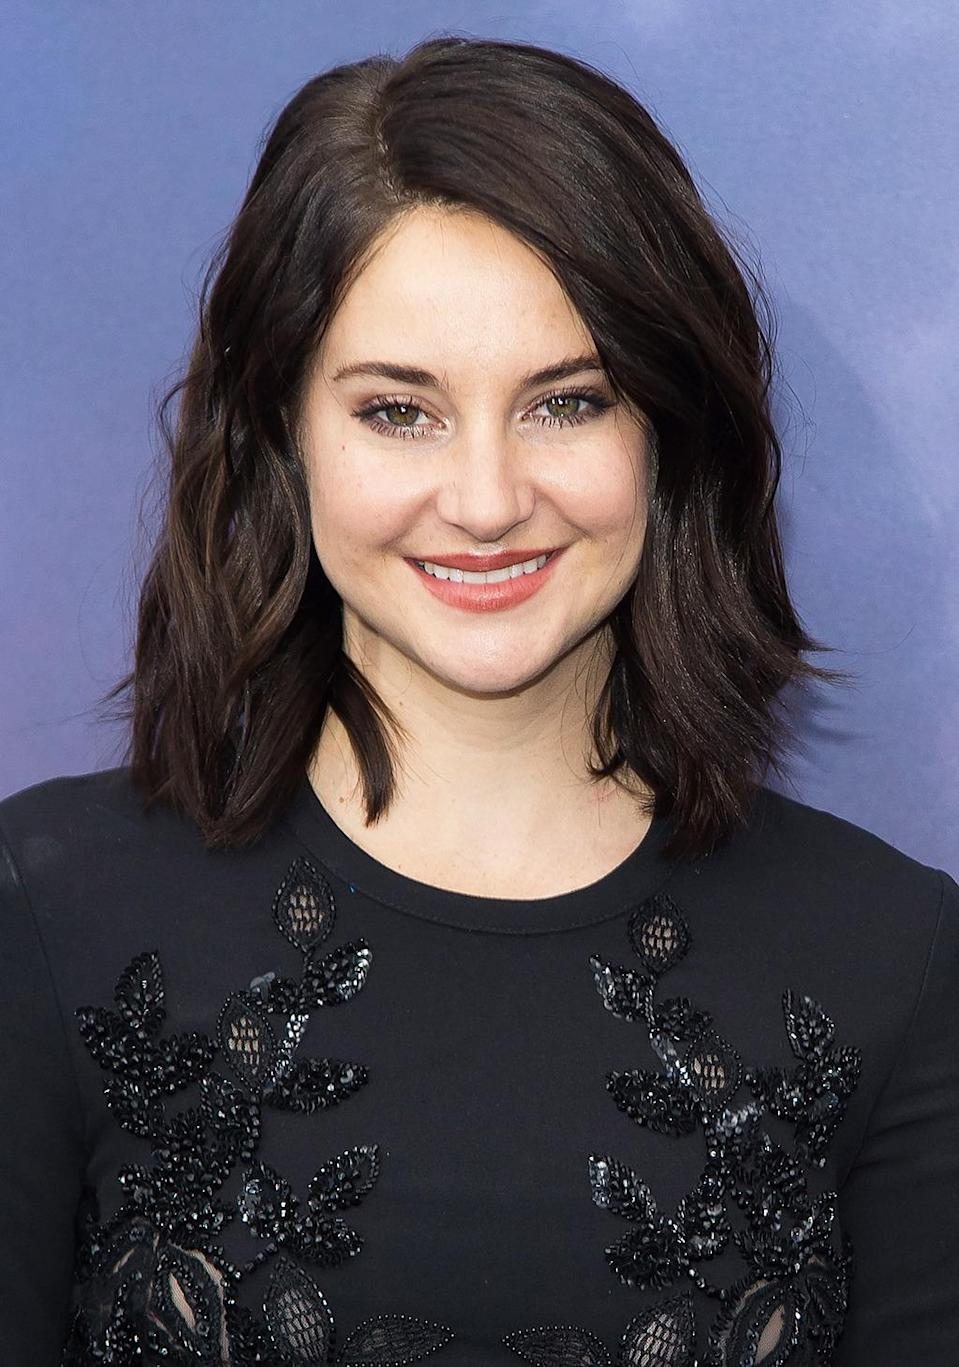 """<p>There's plenty of DIY teeth whitening recipes out there, but Shailene Woodley has taken the idea further than we thought possible. Woodley recently told <i>Into the Gloss </i>that she's a <a href=""""https://intothegloss.com/2014/03"""" rel=""""nofollow noopener"""" target=""""_blank"""" data-ylk=""""slk:fan of oil pulling"""" class=""""link rapid-noclick-resp"""">fan of oil pulling</a>, a practice in which you swish coconut or sesame oil in your mouth in order to whiten teeth. According to Woodley, the plaque on your teeth is fat-soluble so the lipids have to dissolve in fats, hence the oil working to clean the teeth. You should still <a href=""""http://www.webmd.com/oral-health/features/oil-pulling"""" rel=""""nofollow noopener"""" target=""""_blank"""" data-ylk=""""slk:keep brushing and flossing"""" class=""""link rapid-noclick-resp"""">keep brushing and flossing</a> if you try this.<br></p><p><br></p><p><br></p>"""